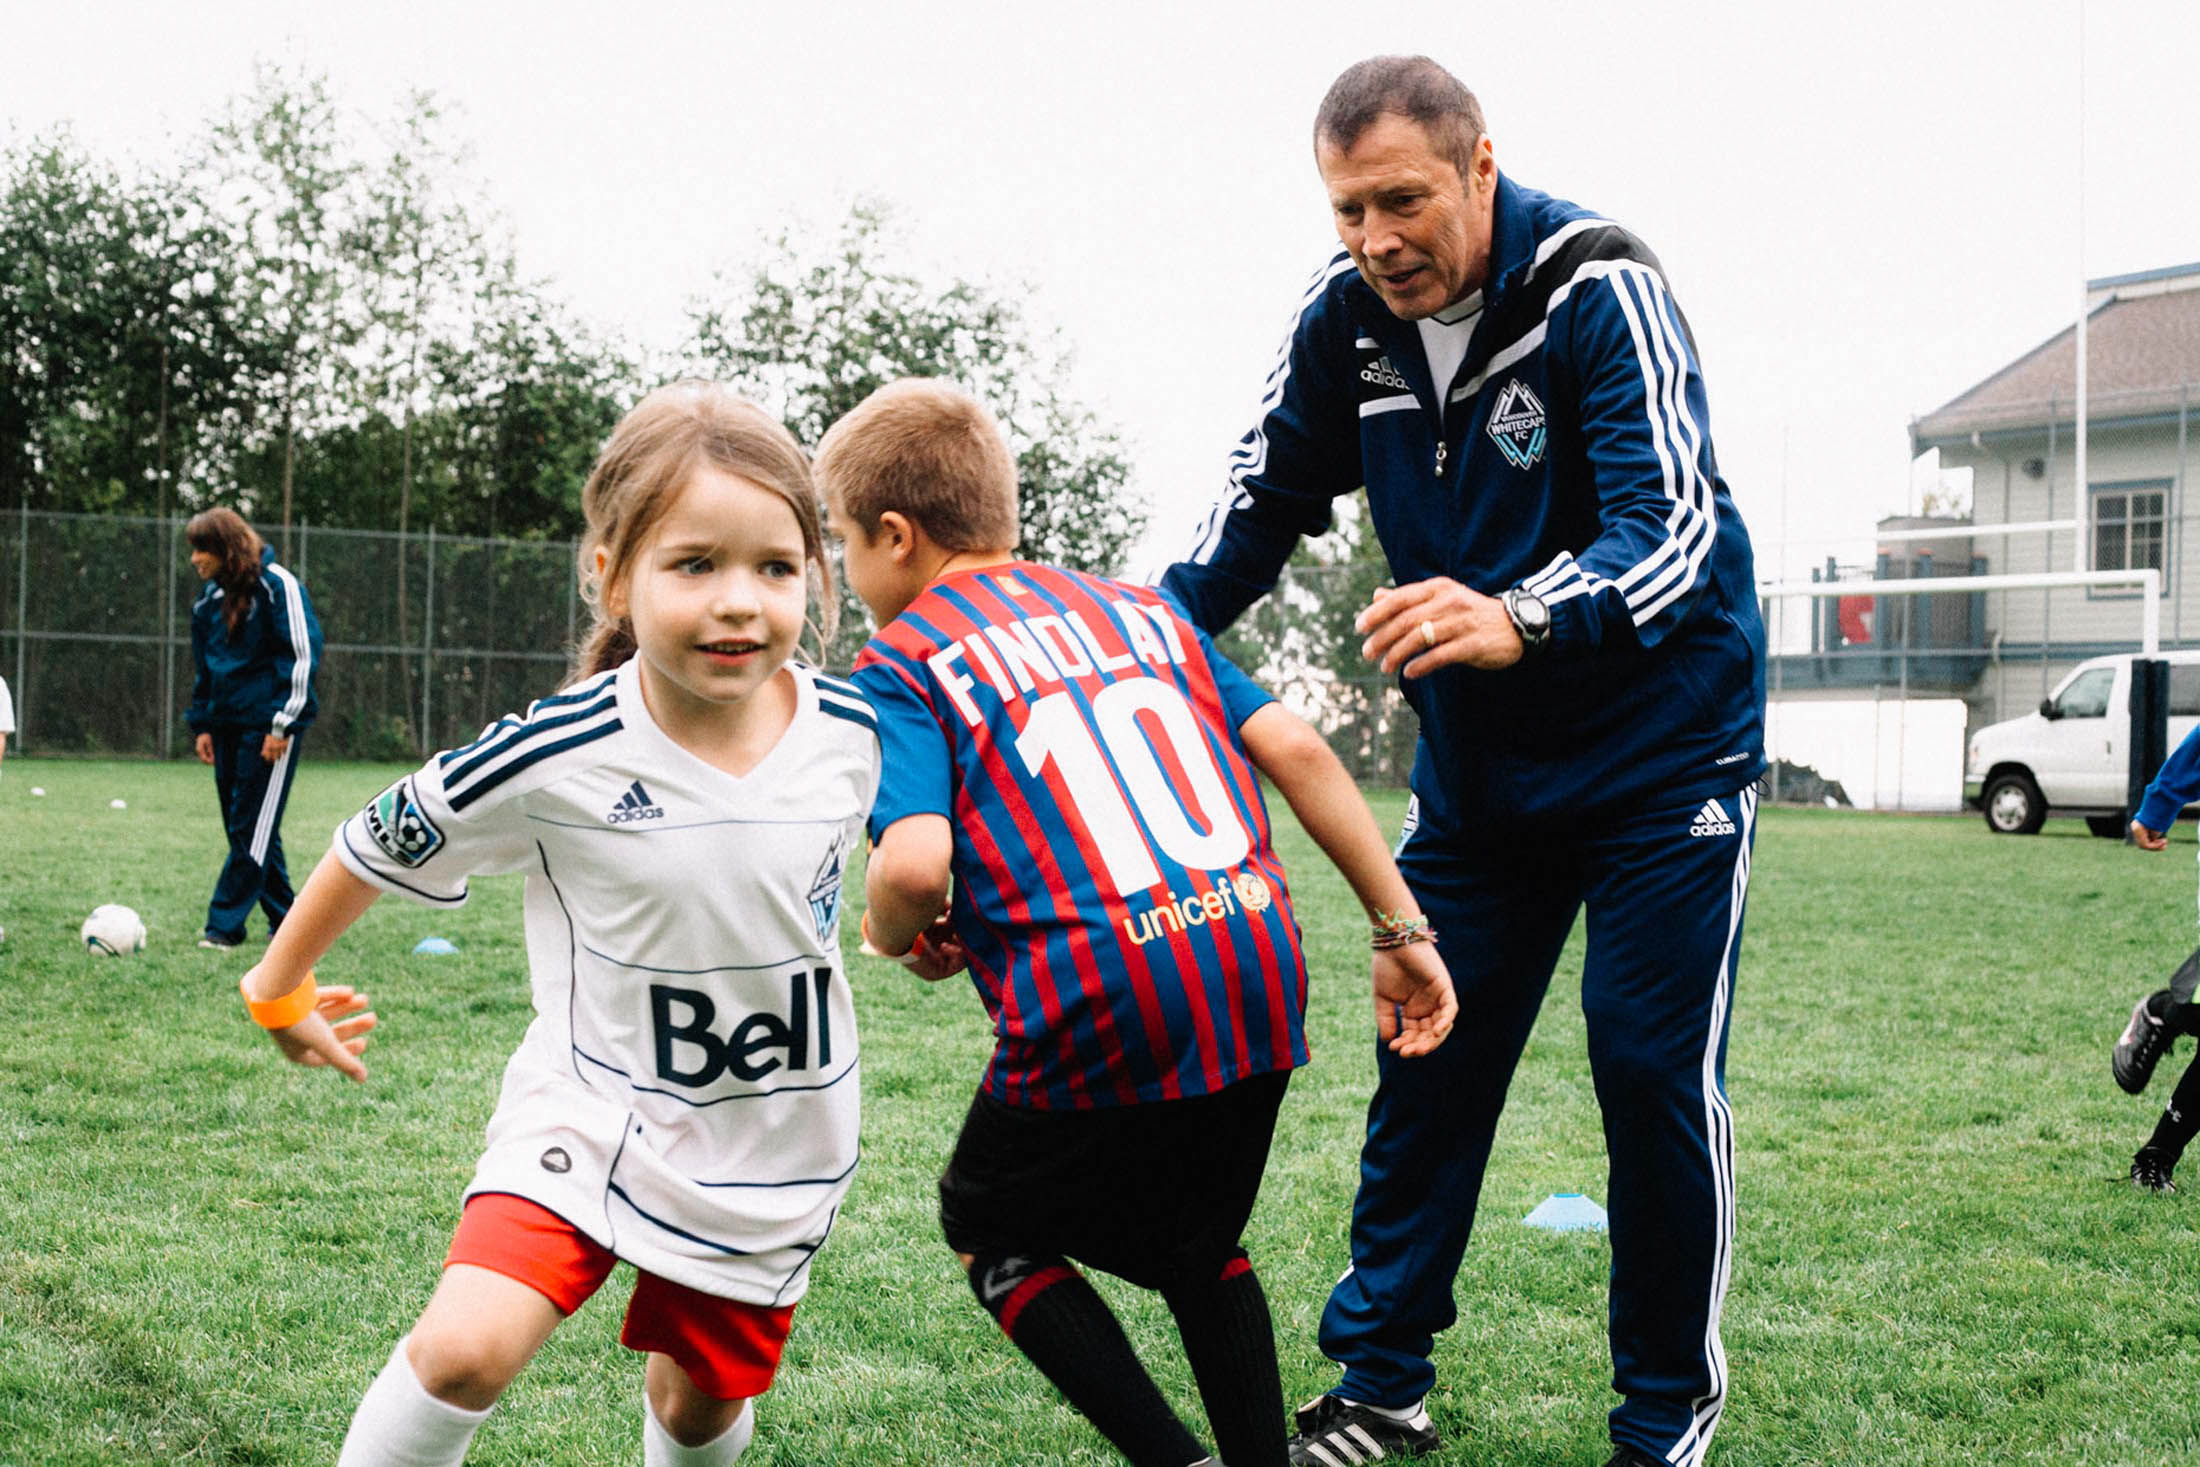 Whitecaps Kids Camp